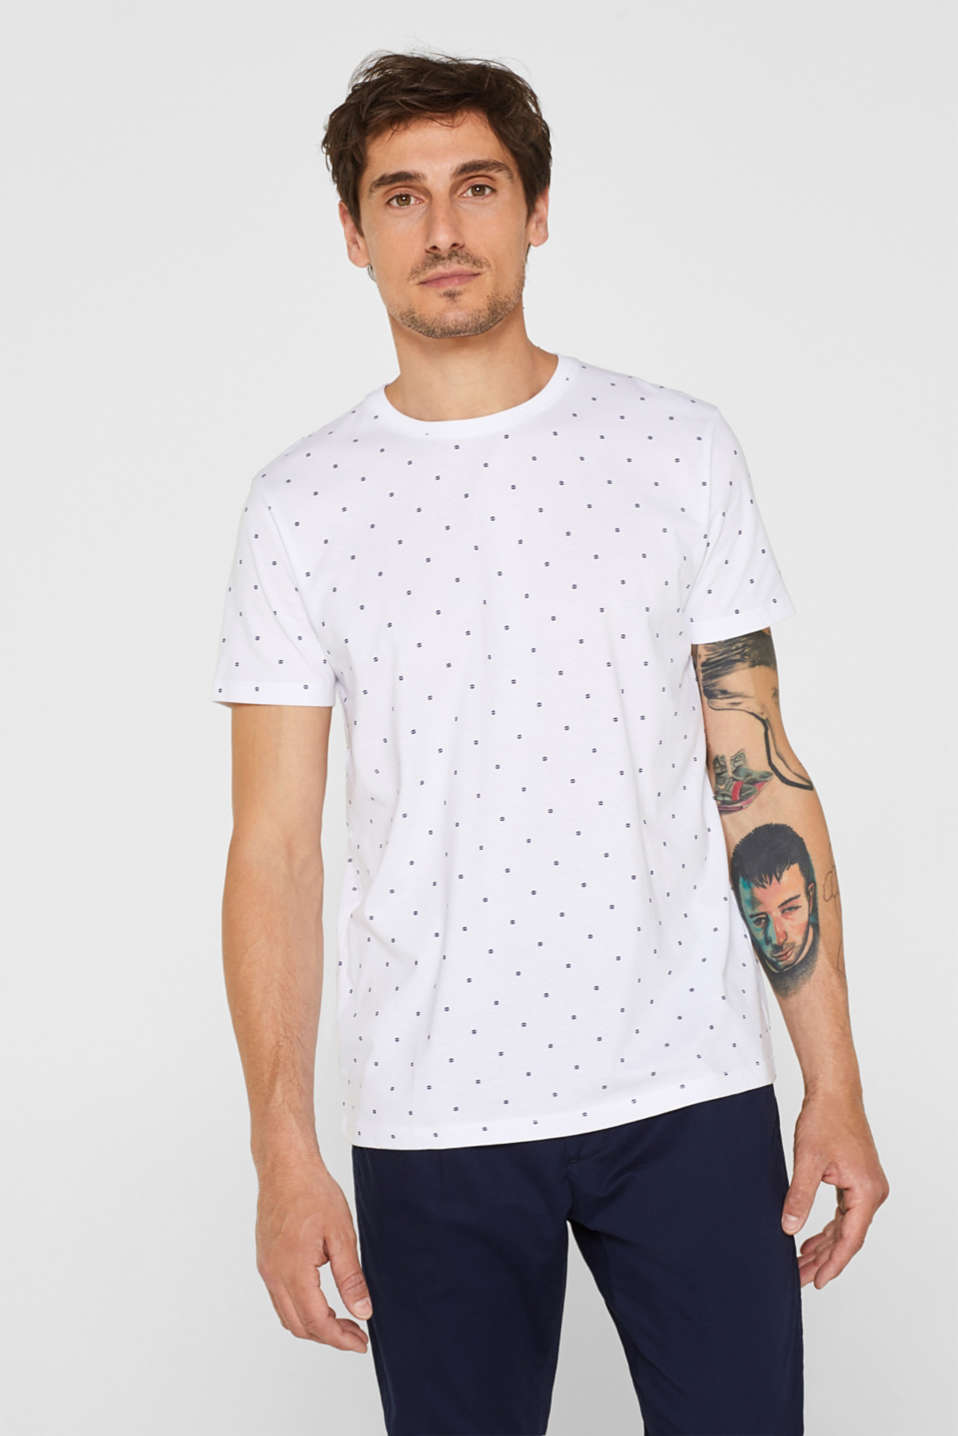 Esprit - Jersey T-shirt with a micro print, 100% cotton